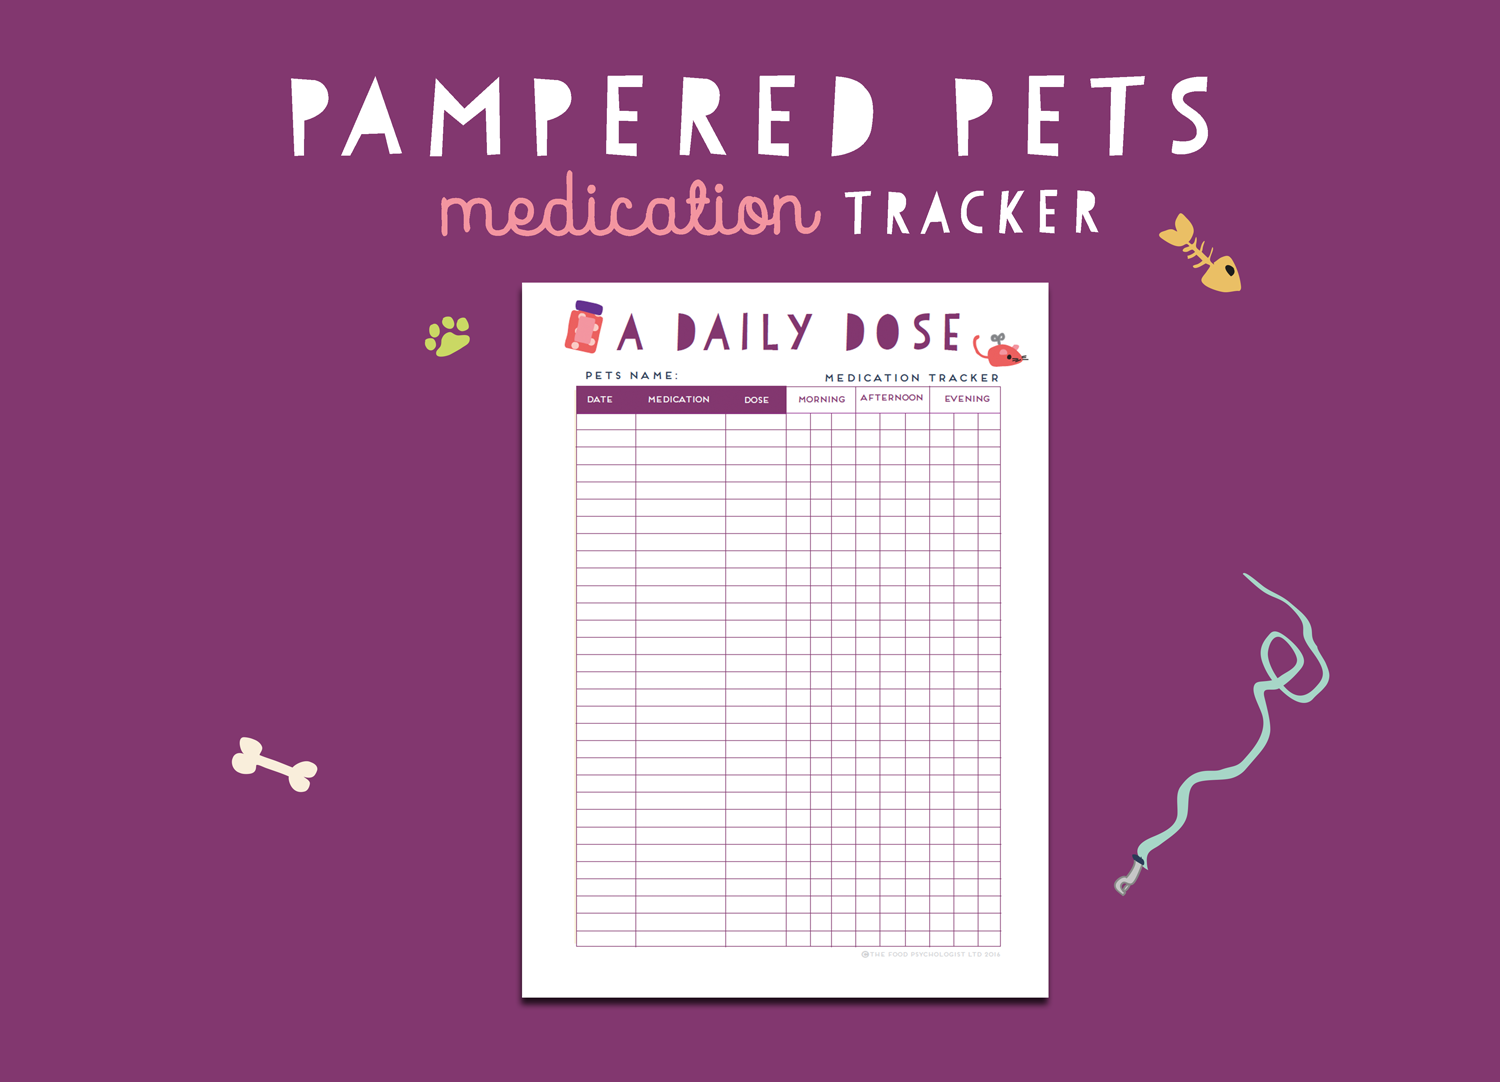 Pampered Pets Medication Tracker